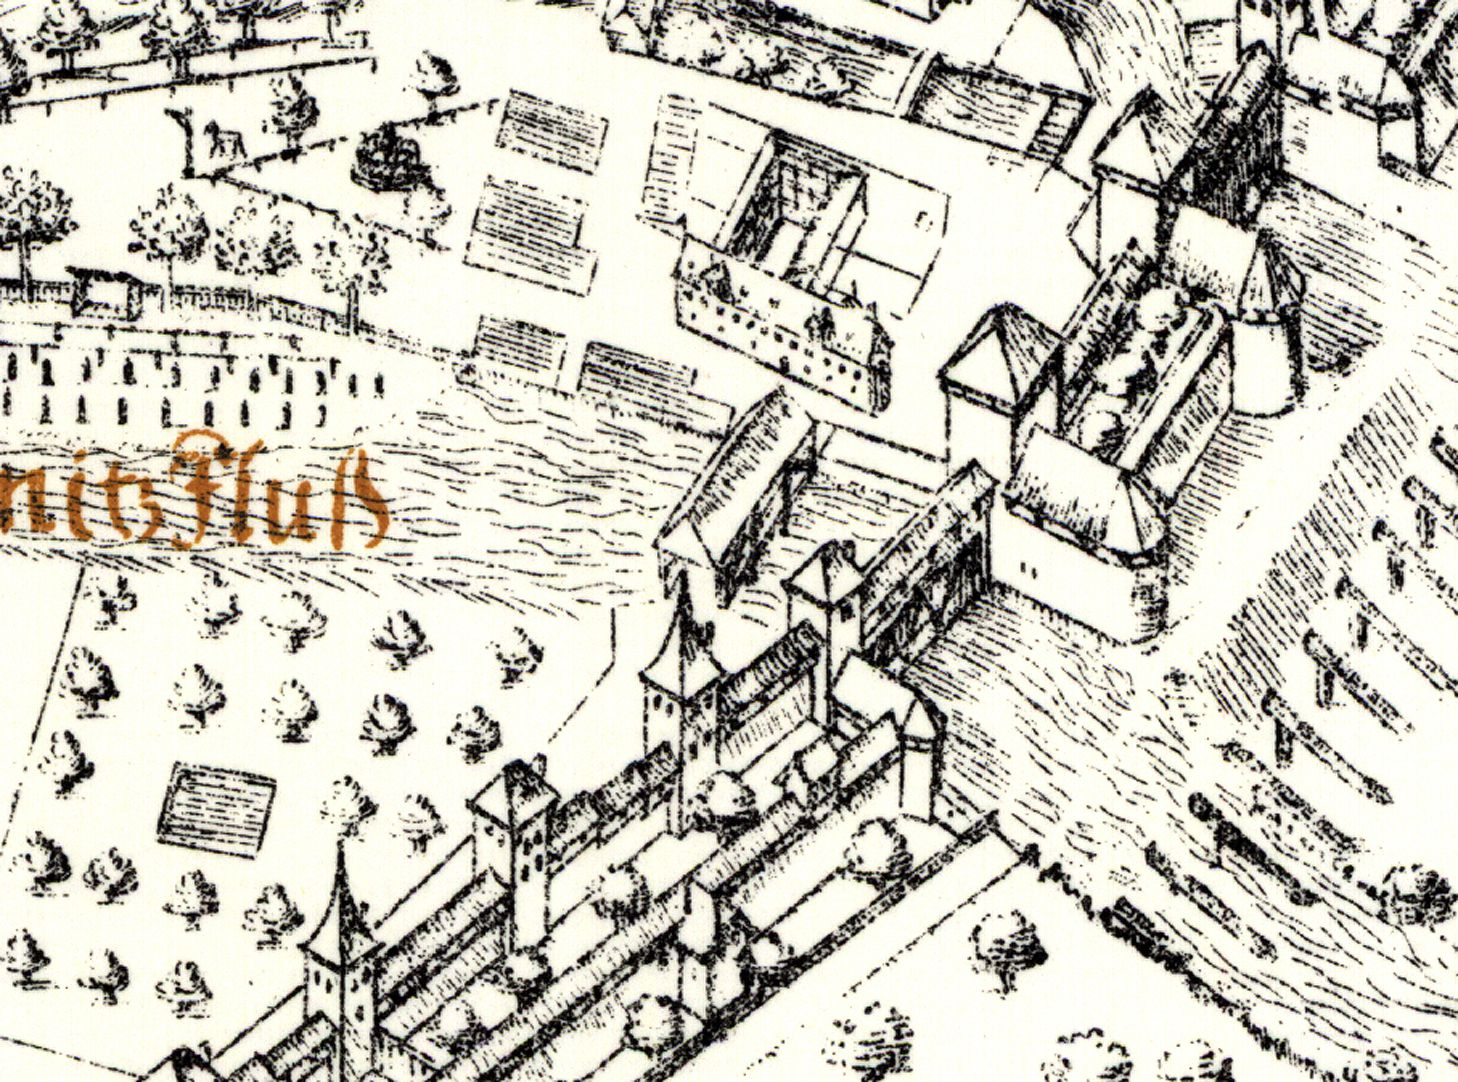 Kress´s map of Nuremberg with surrounding wall River Pegnitz with Casemate Gate and Canon Towers of 1559, on the left of them the old fencing house